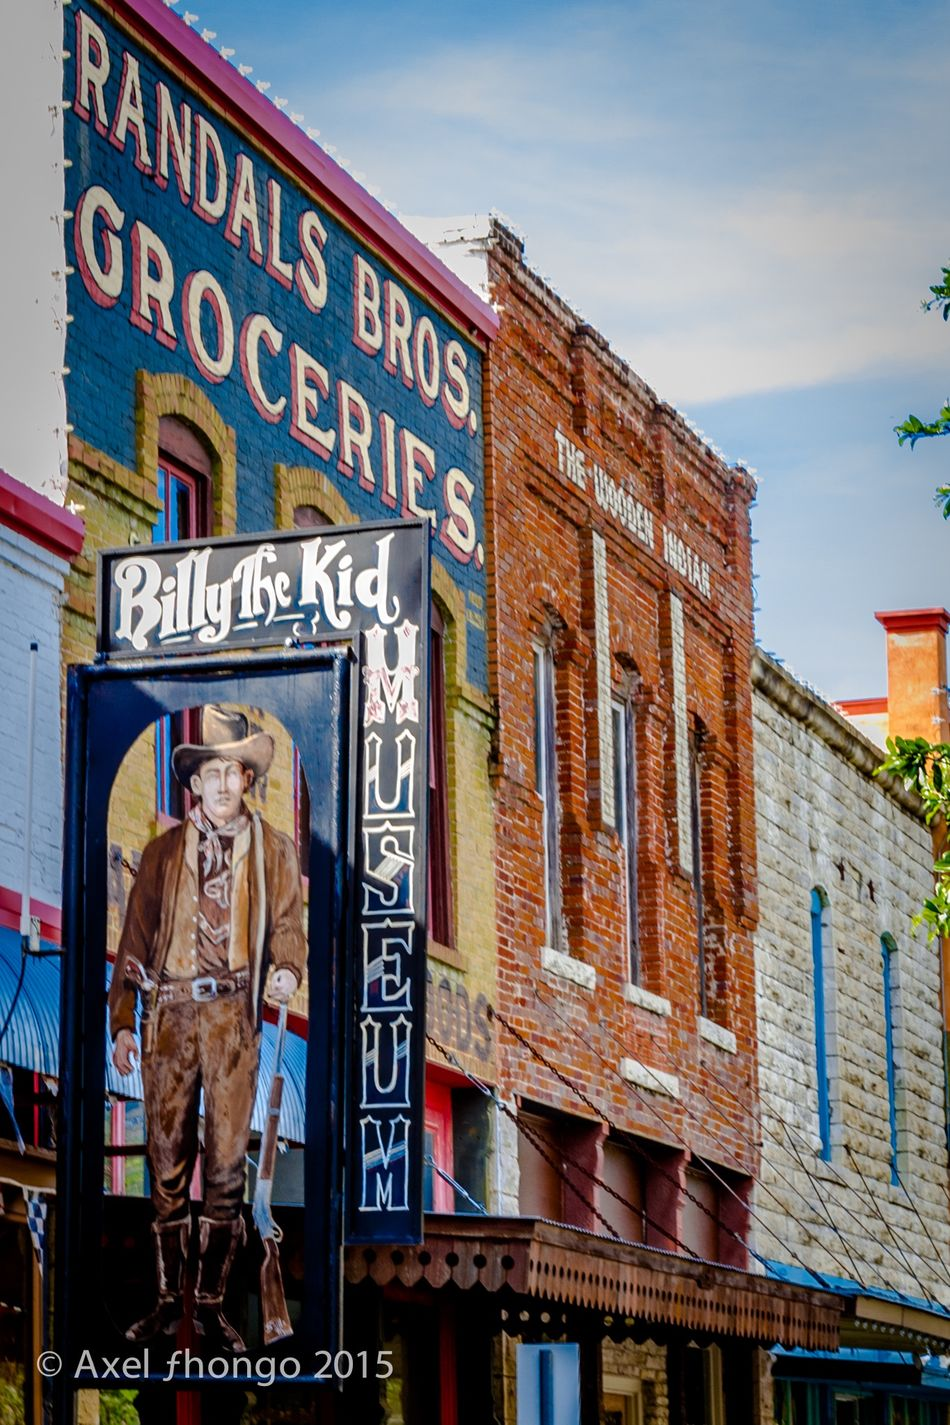 Billy The Kid Western Old West  Old Western Hico Texas Town Old Town Ghost Town Hanging Out